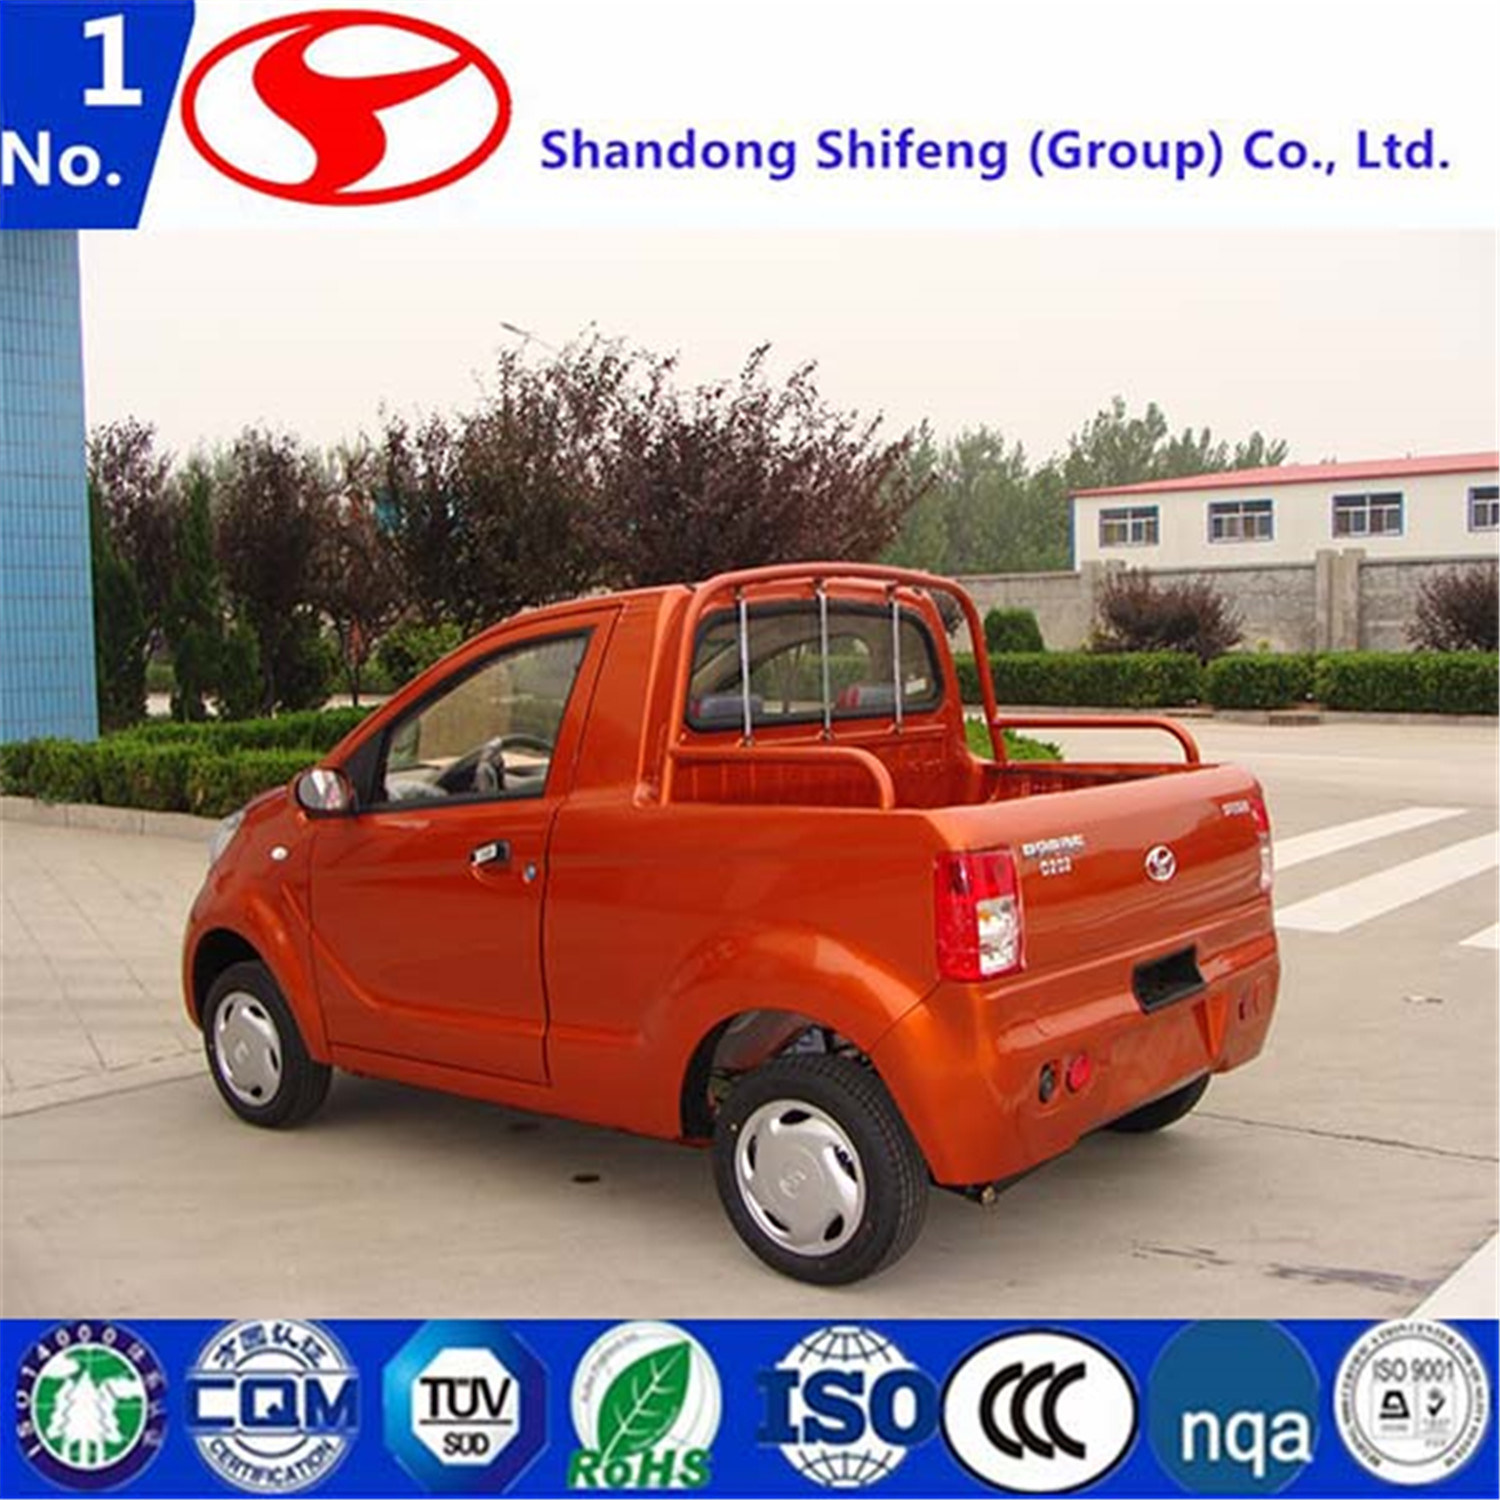 Chinese Mini Electric Vehicle Car For Sale Photos Pictures Made